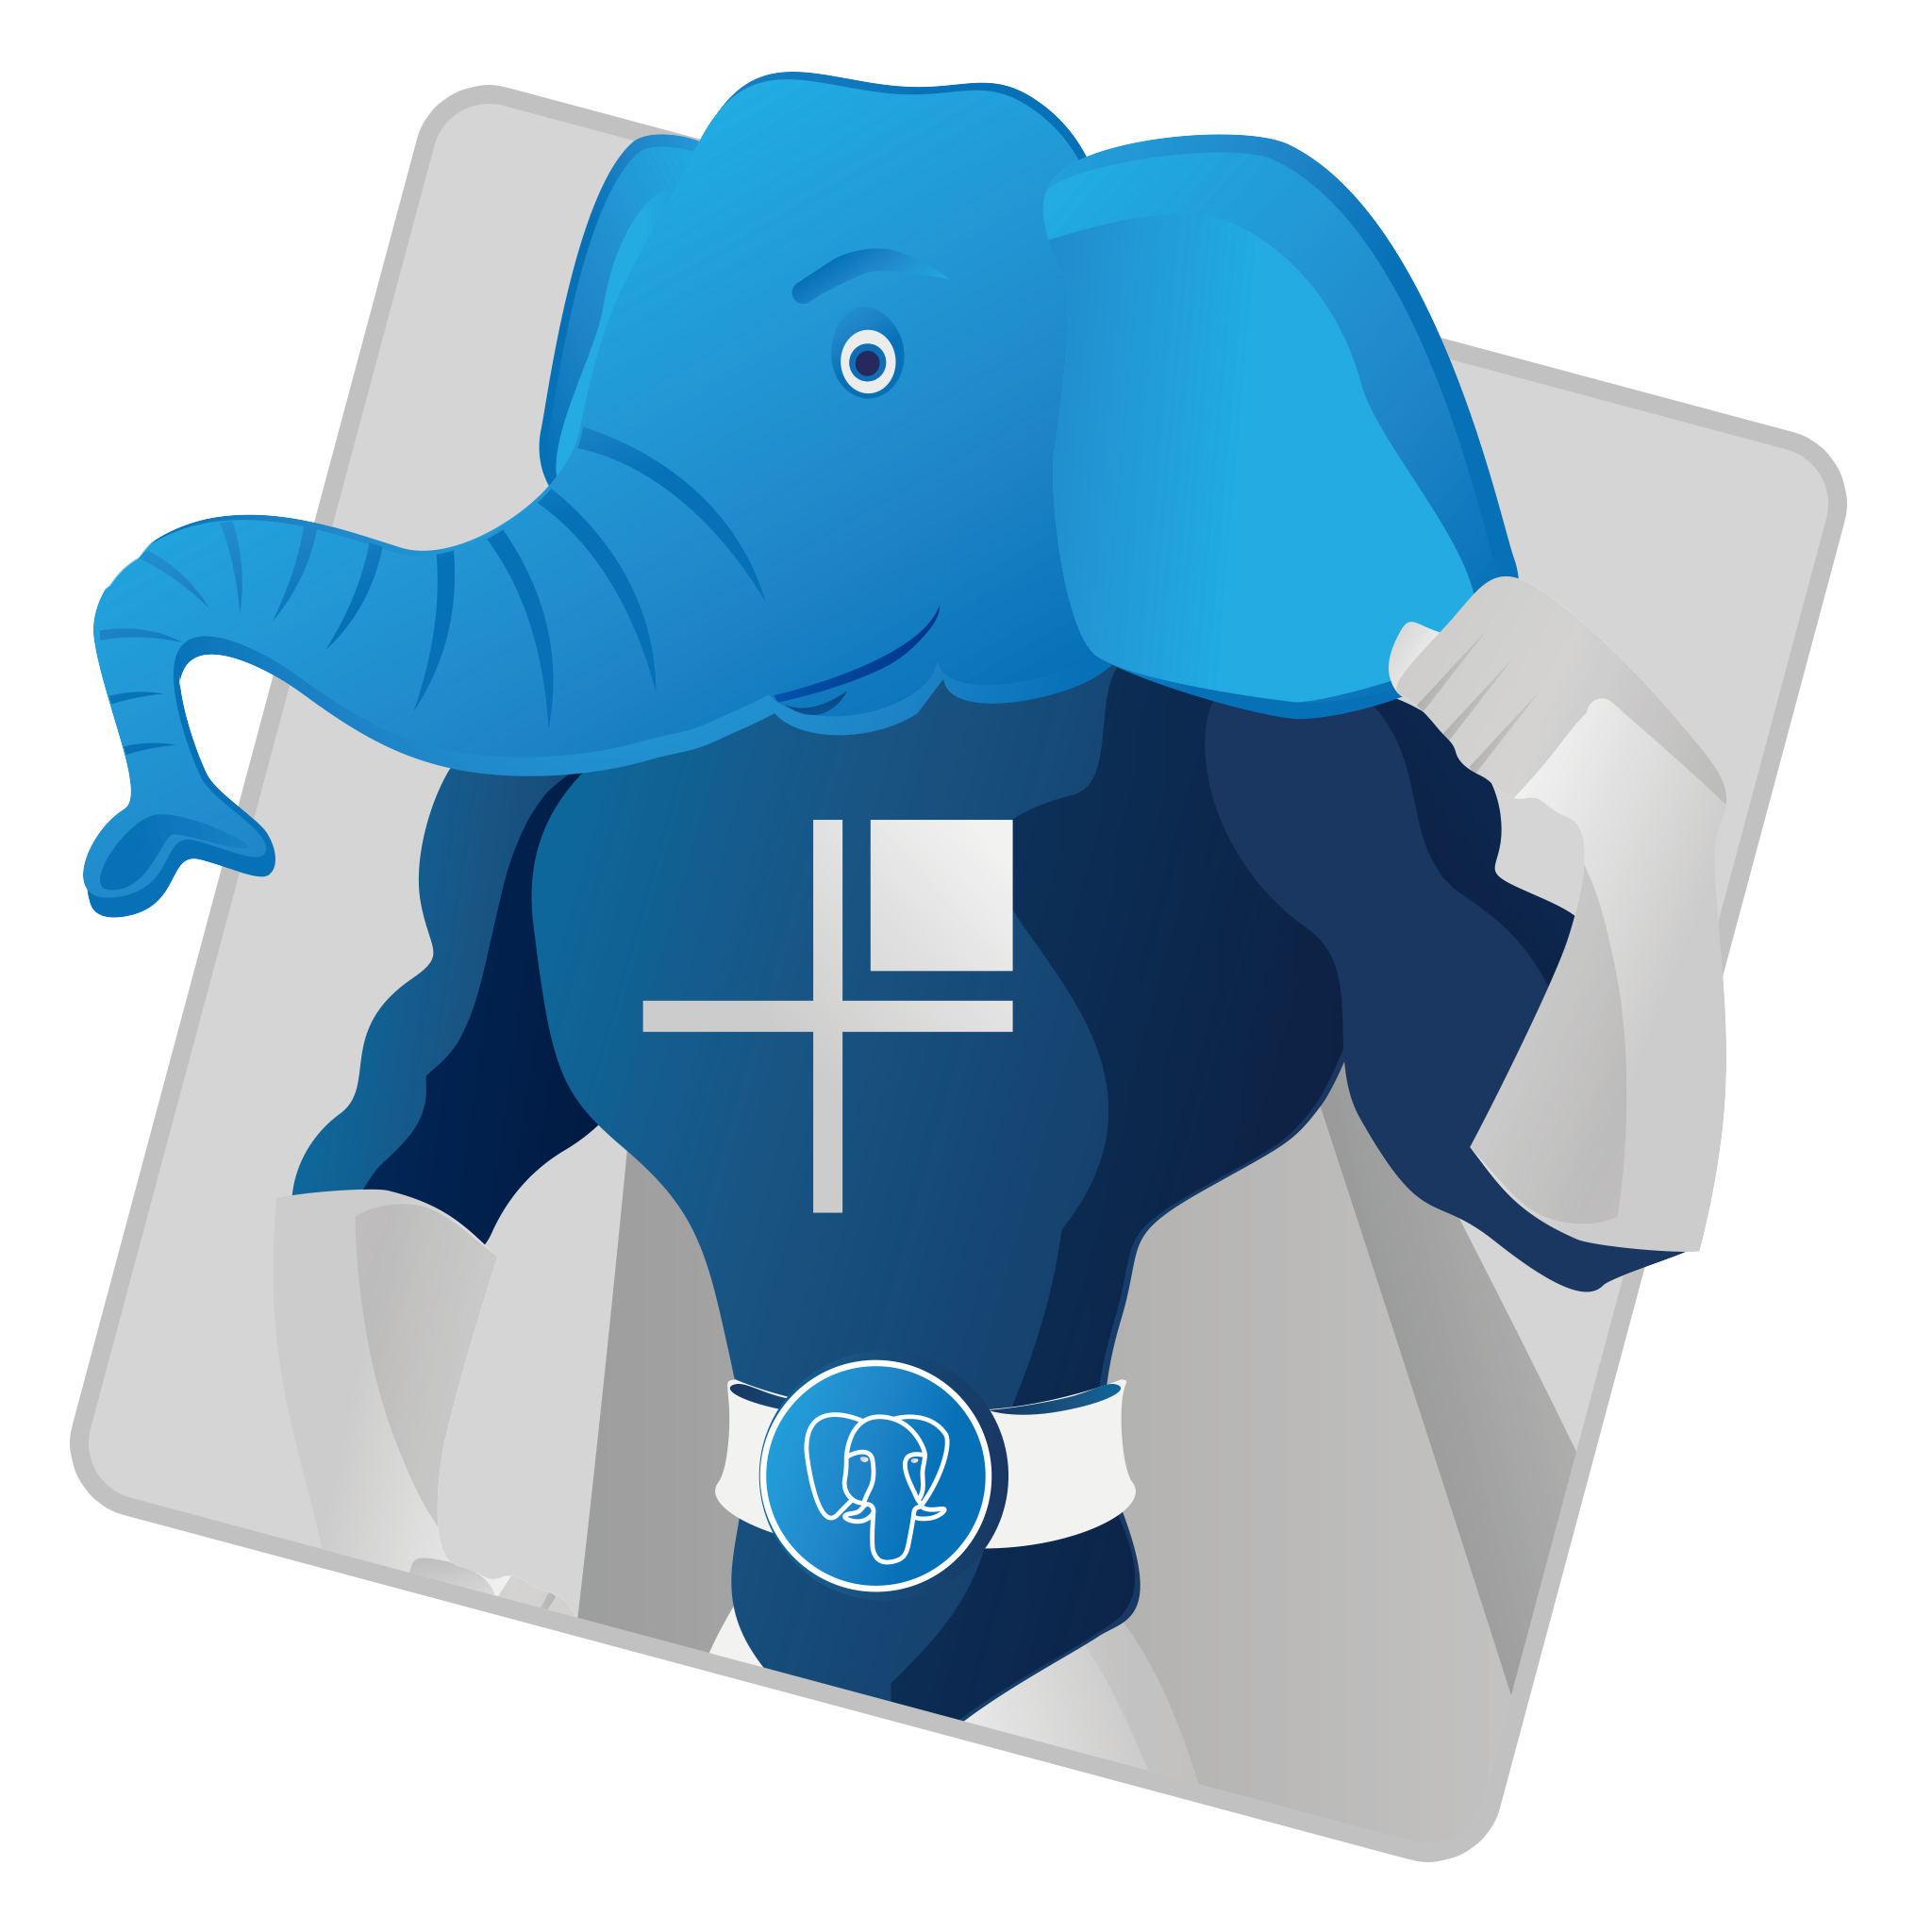 2ndQPostgres Enterprise grade PostgreSQL by 2ndQuadrant, PostgreSQL Enterprise grade services by 2ndQuadrant